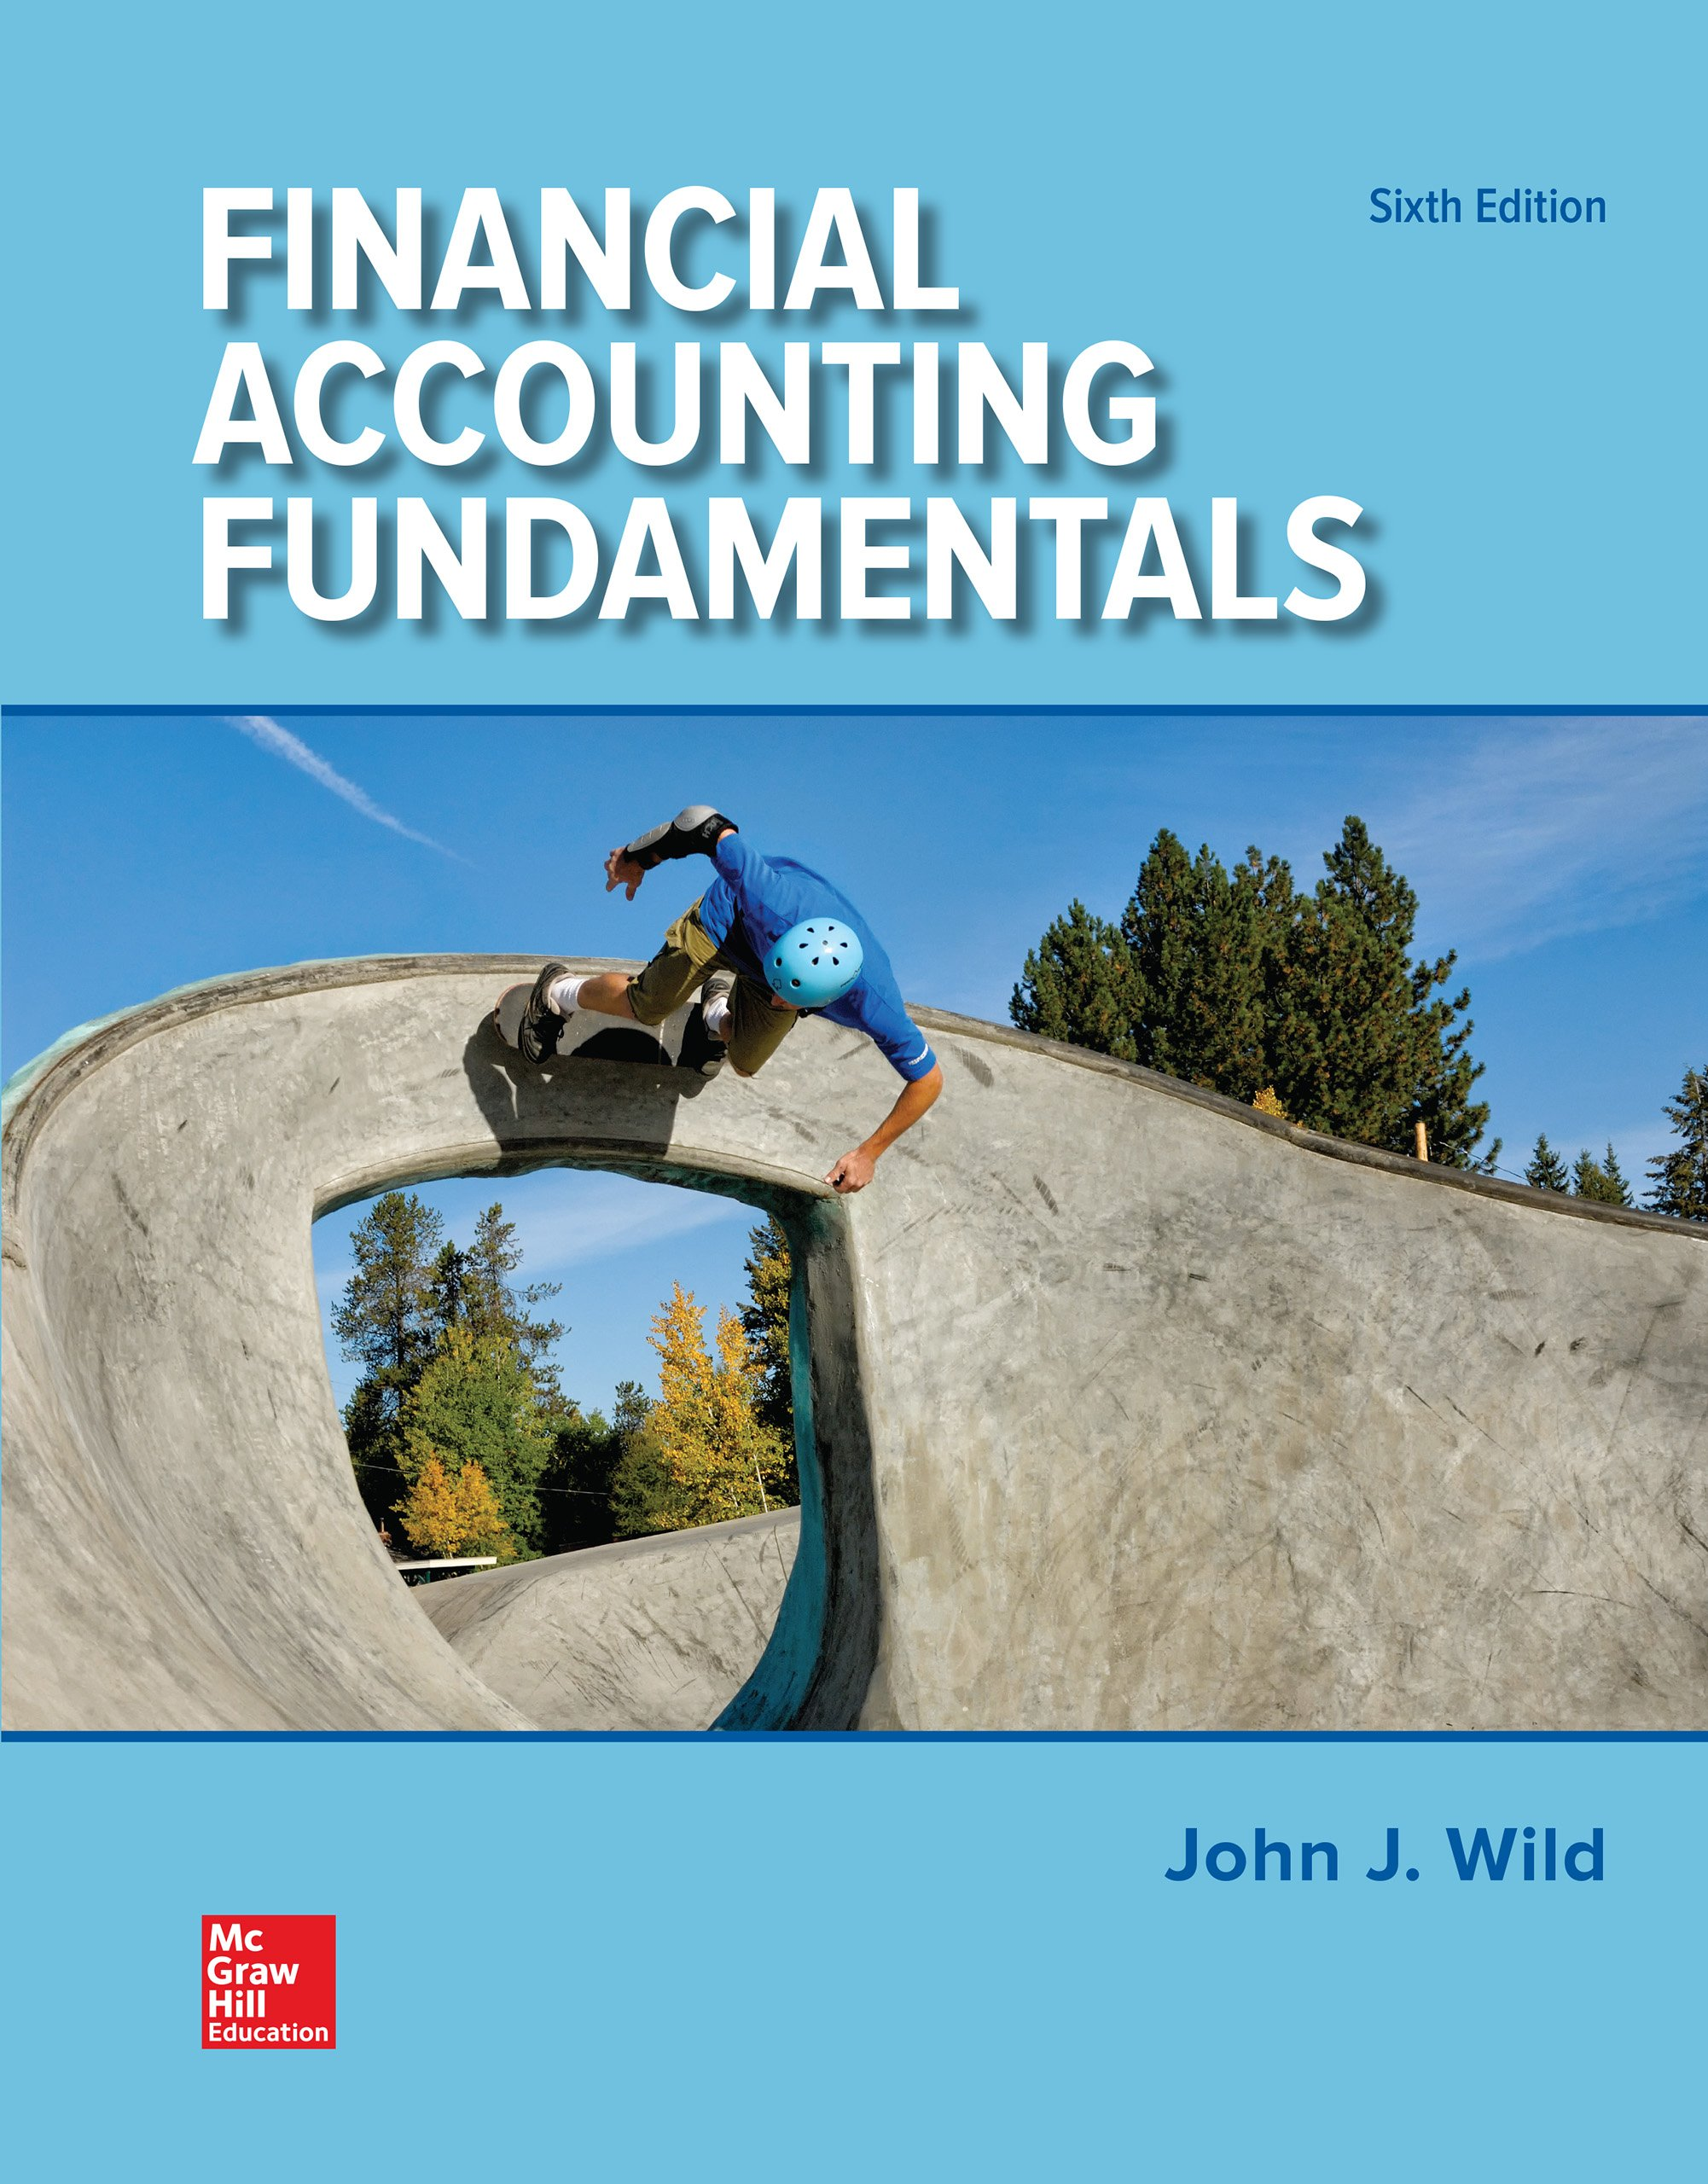 Image OfFinancial Accounting Fundamentals (English Edition)